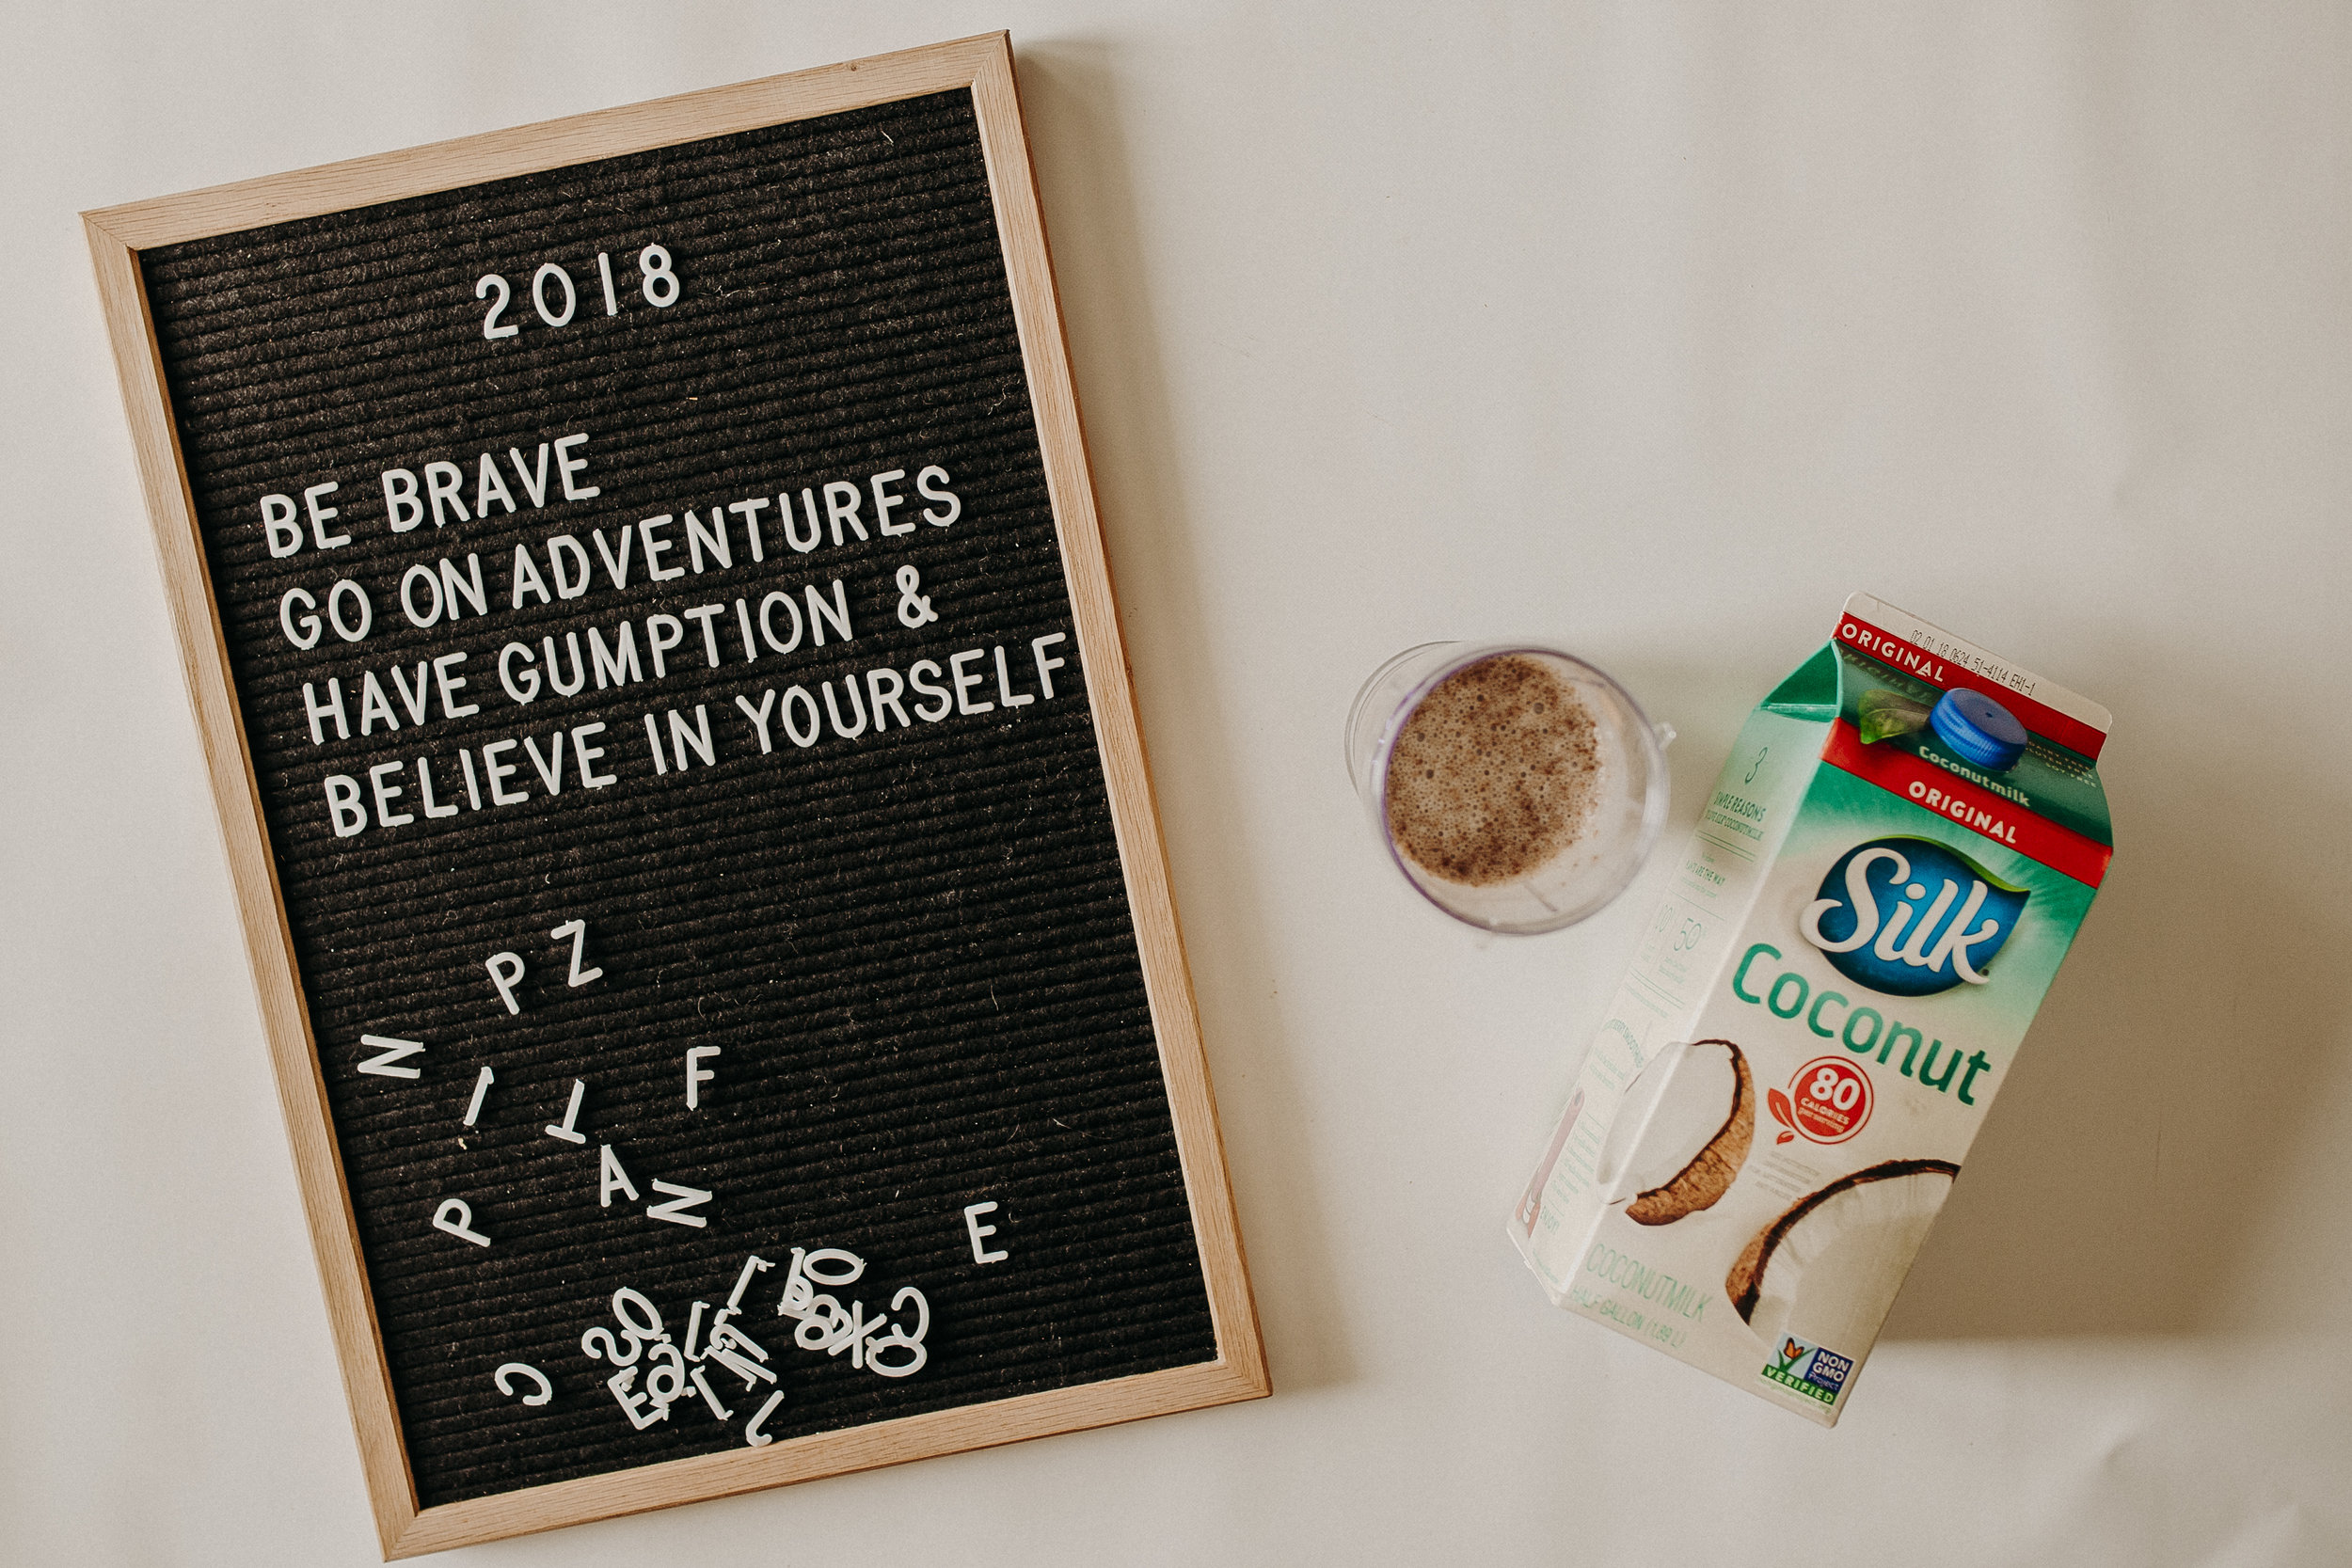 Silk-Almond-Milk-New-Year-New-You-Sticking-To-Your-Goals-6.jpg